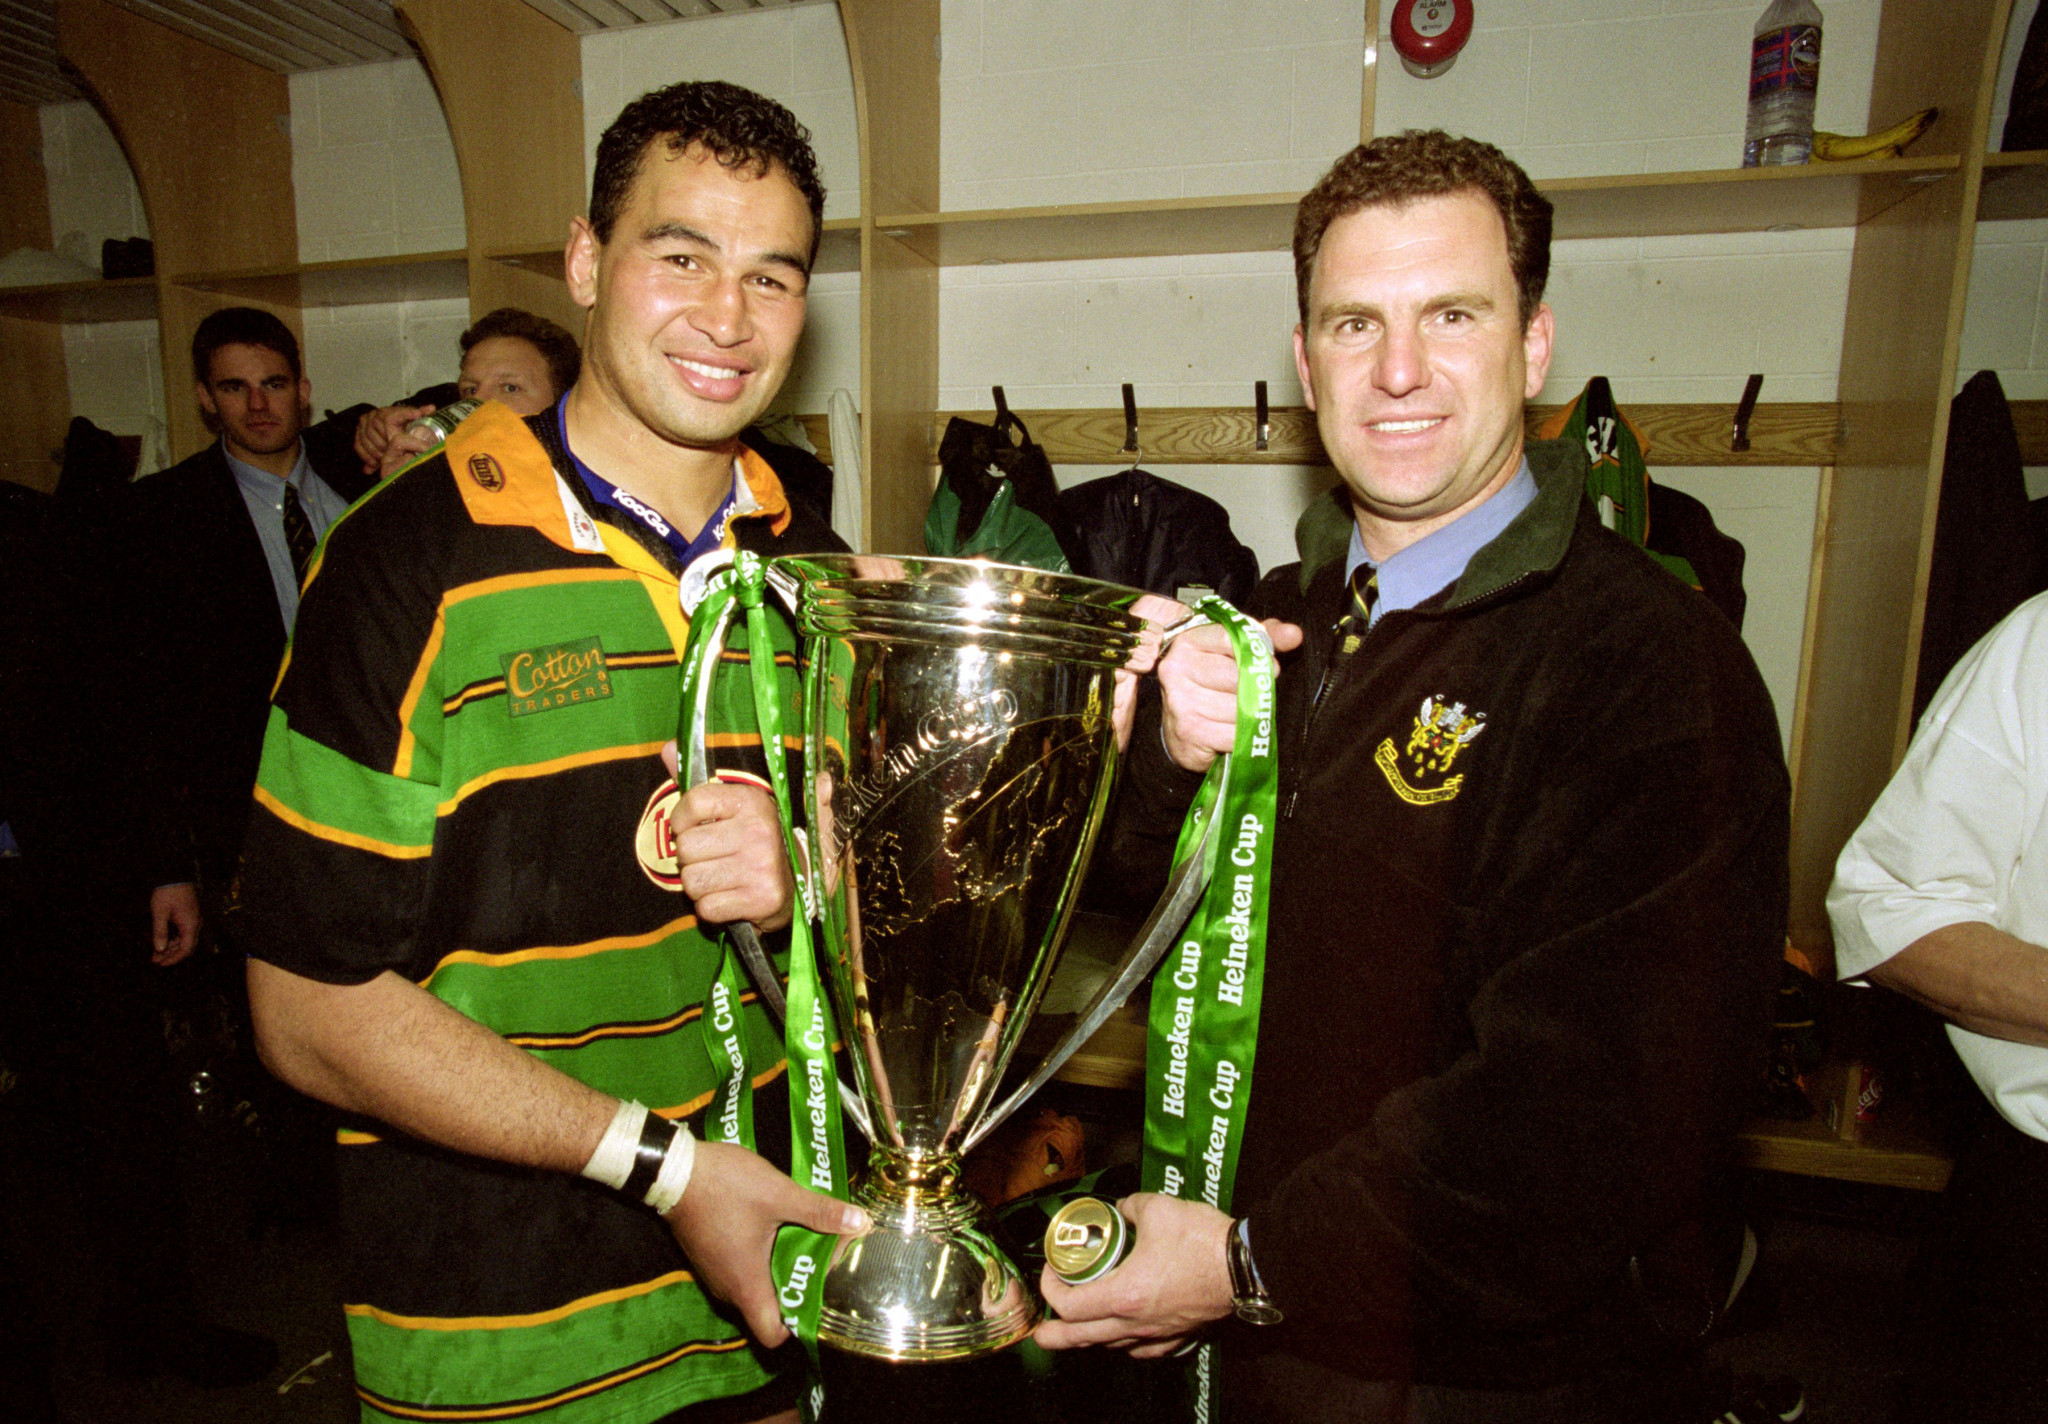 John Steele, right, coached the Northampton Saints when they lifted the European Cup in 2000 ©Getty Images